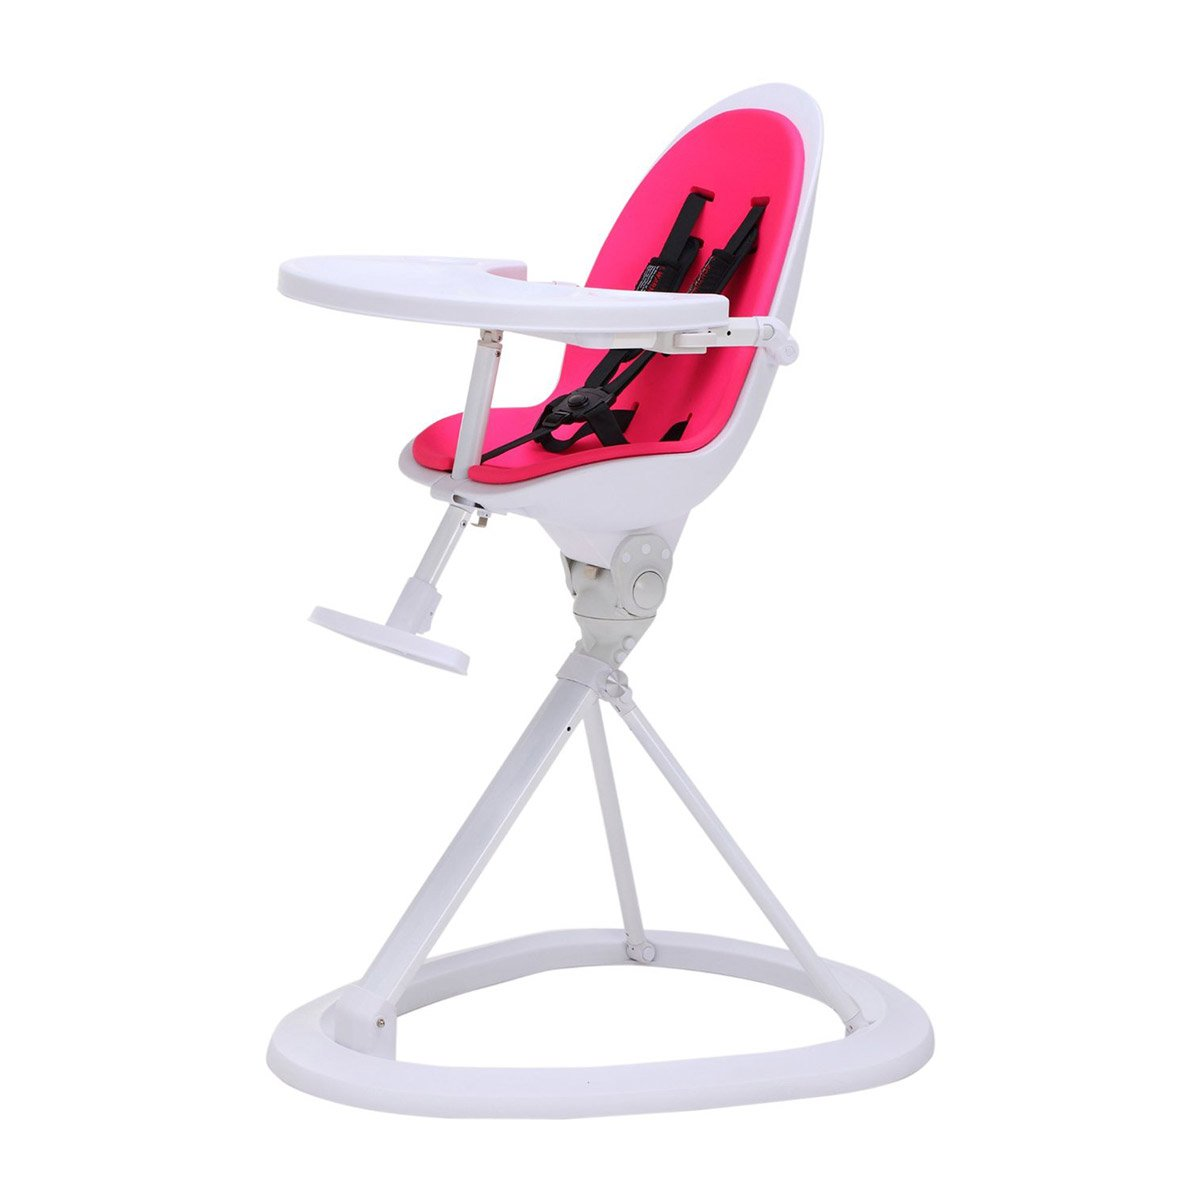 Boon flair high chair pink - Ickle Bubba Orb Baby Highchair Feature Packed Feeding High Chair In Pink On White Colour Boon Flair Highchair For The Best Price Iu0027ve